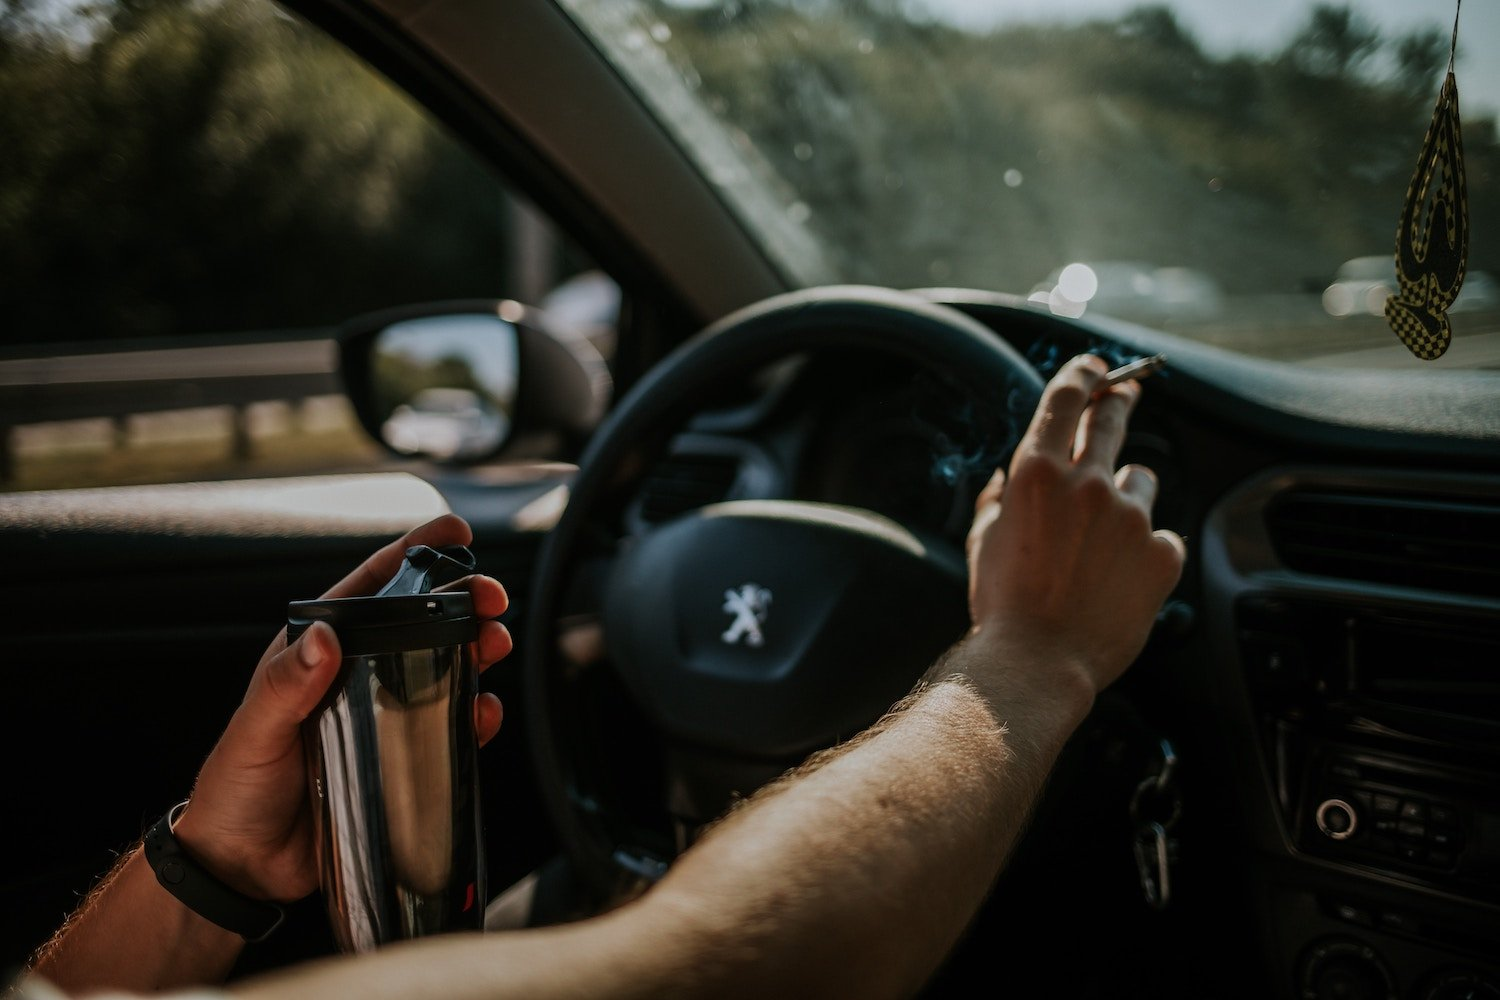 man driving distracted by drinking and smoking driversed.com